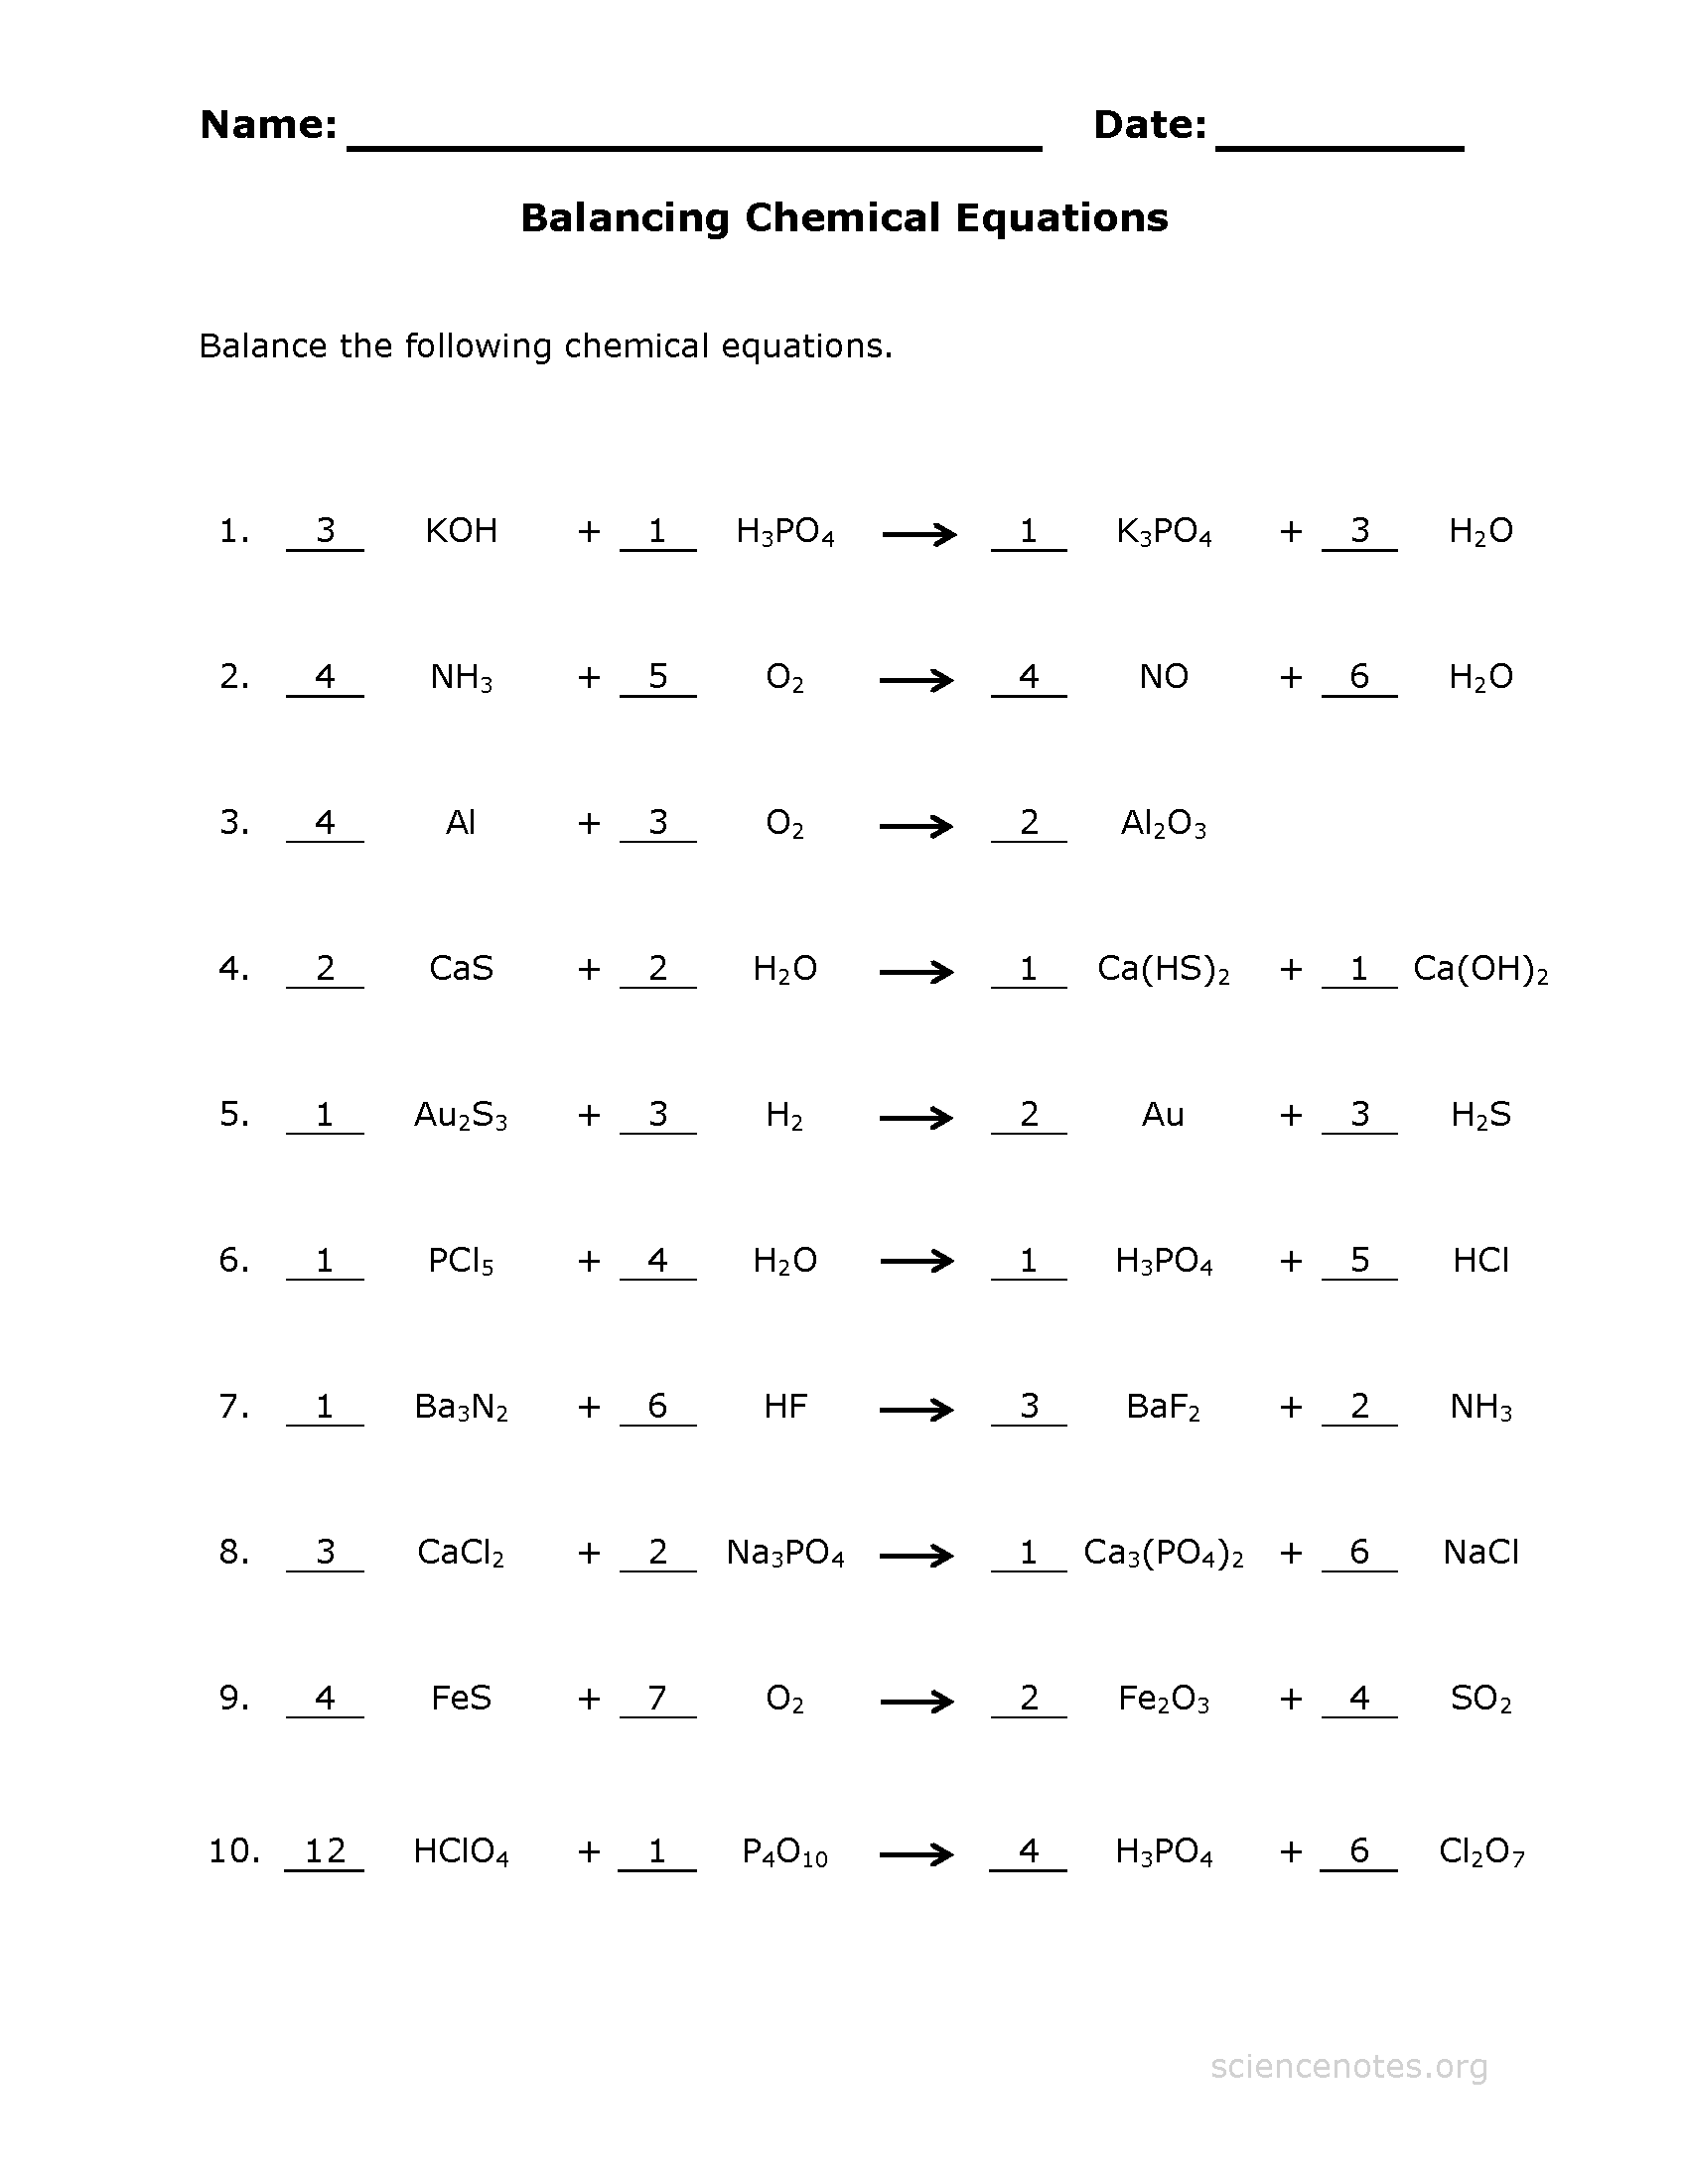 Worksheets Worksheet-balancing-chemical-equations how to balance equations printable worksheets balancing equation practice sheet answer sheet